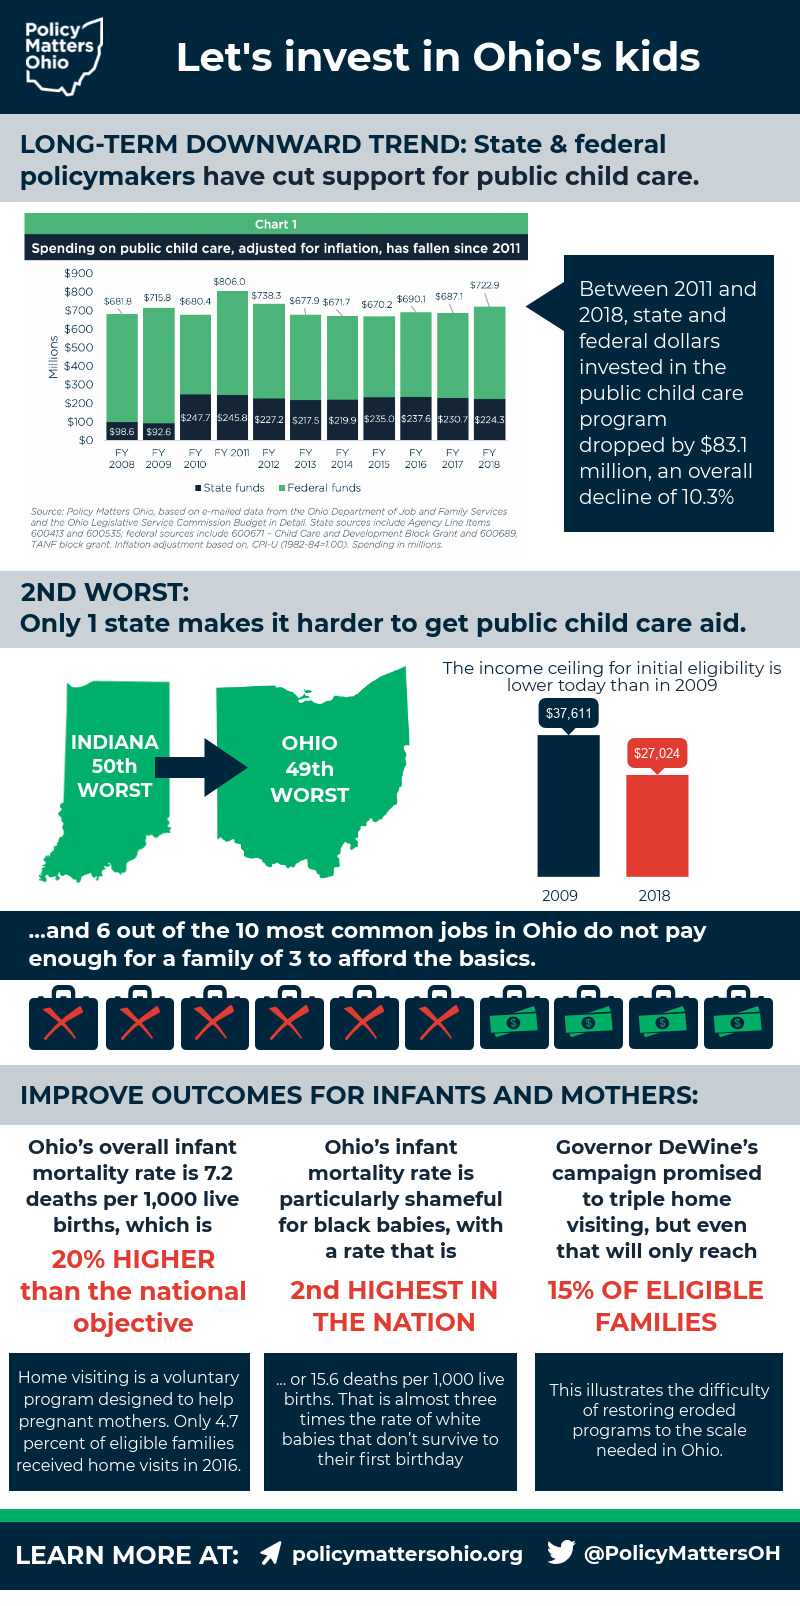 Now is the time to invest in Ohio's children